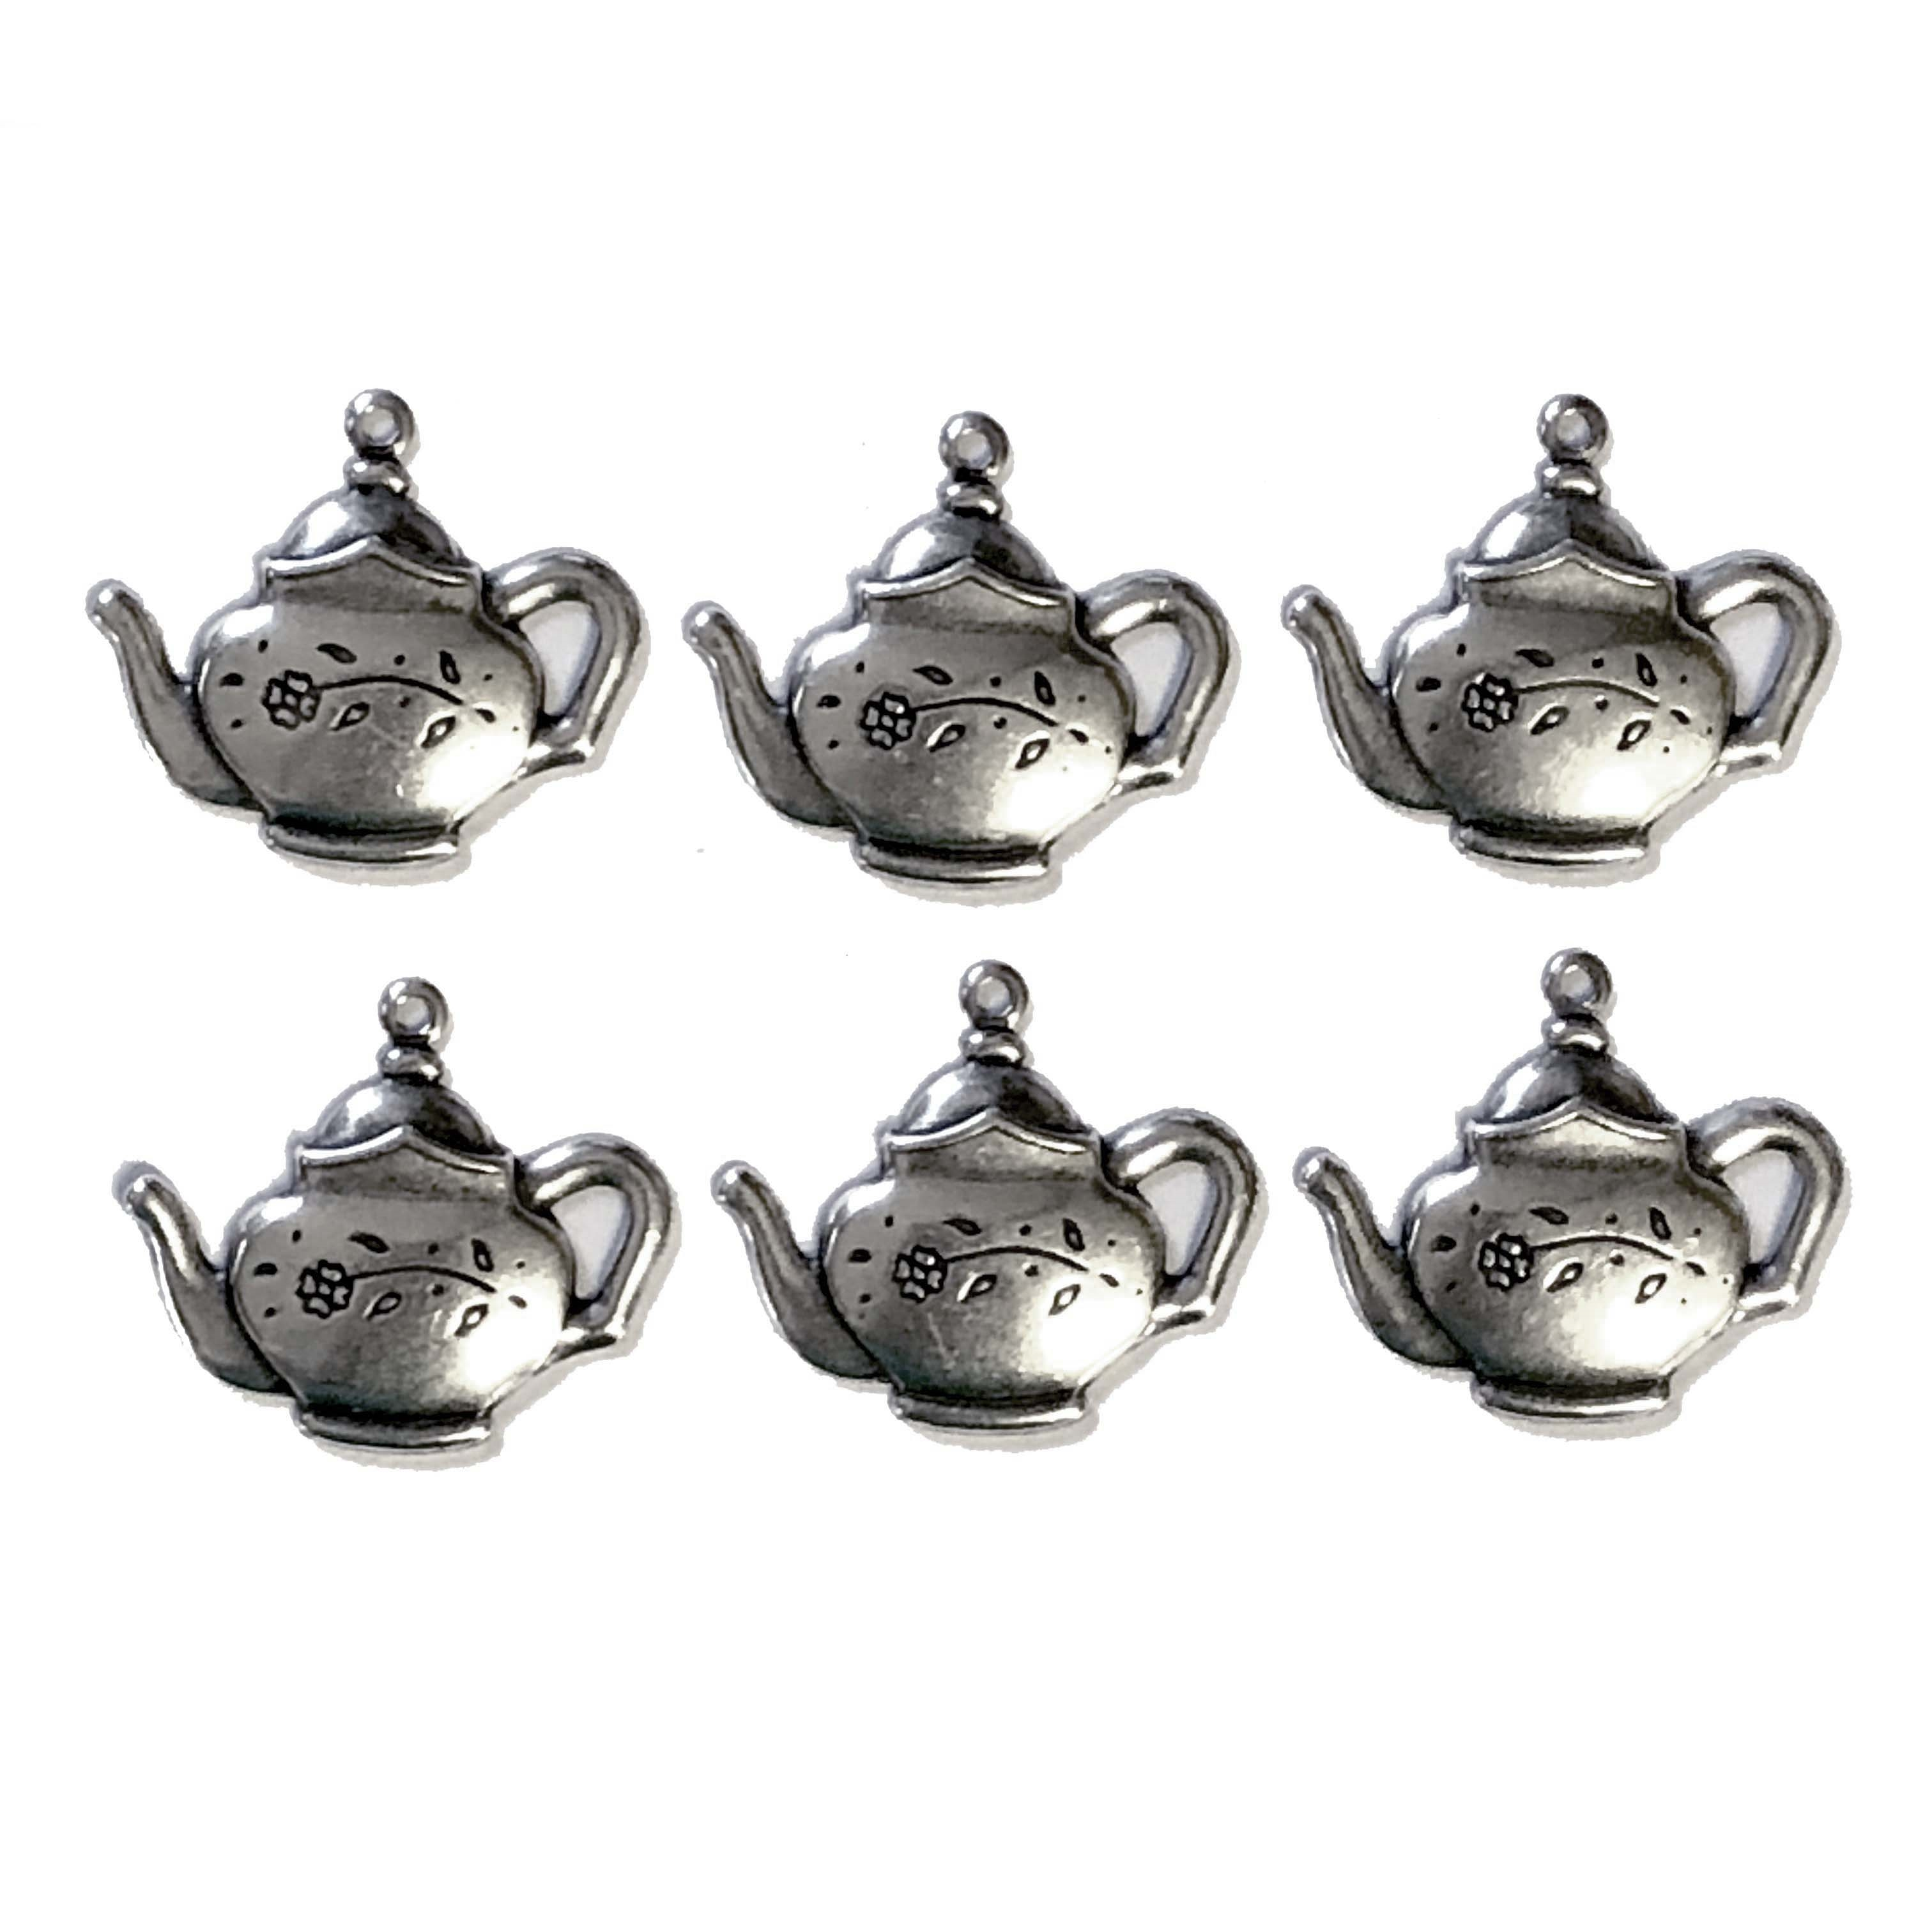 teapot, silverware silverplate, 09258, tea, tea pot, silver charm, teapot charm, charm, kitchen, Bsue Boutiques, jewelry supplies, jewelry making